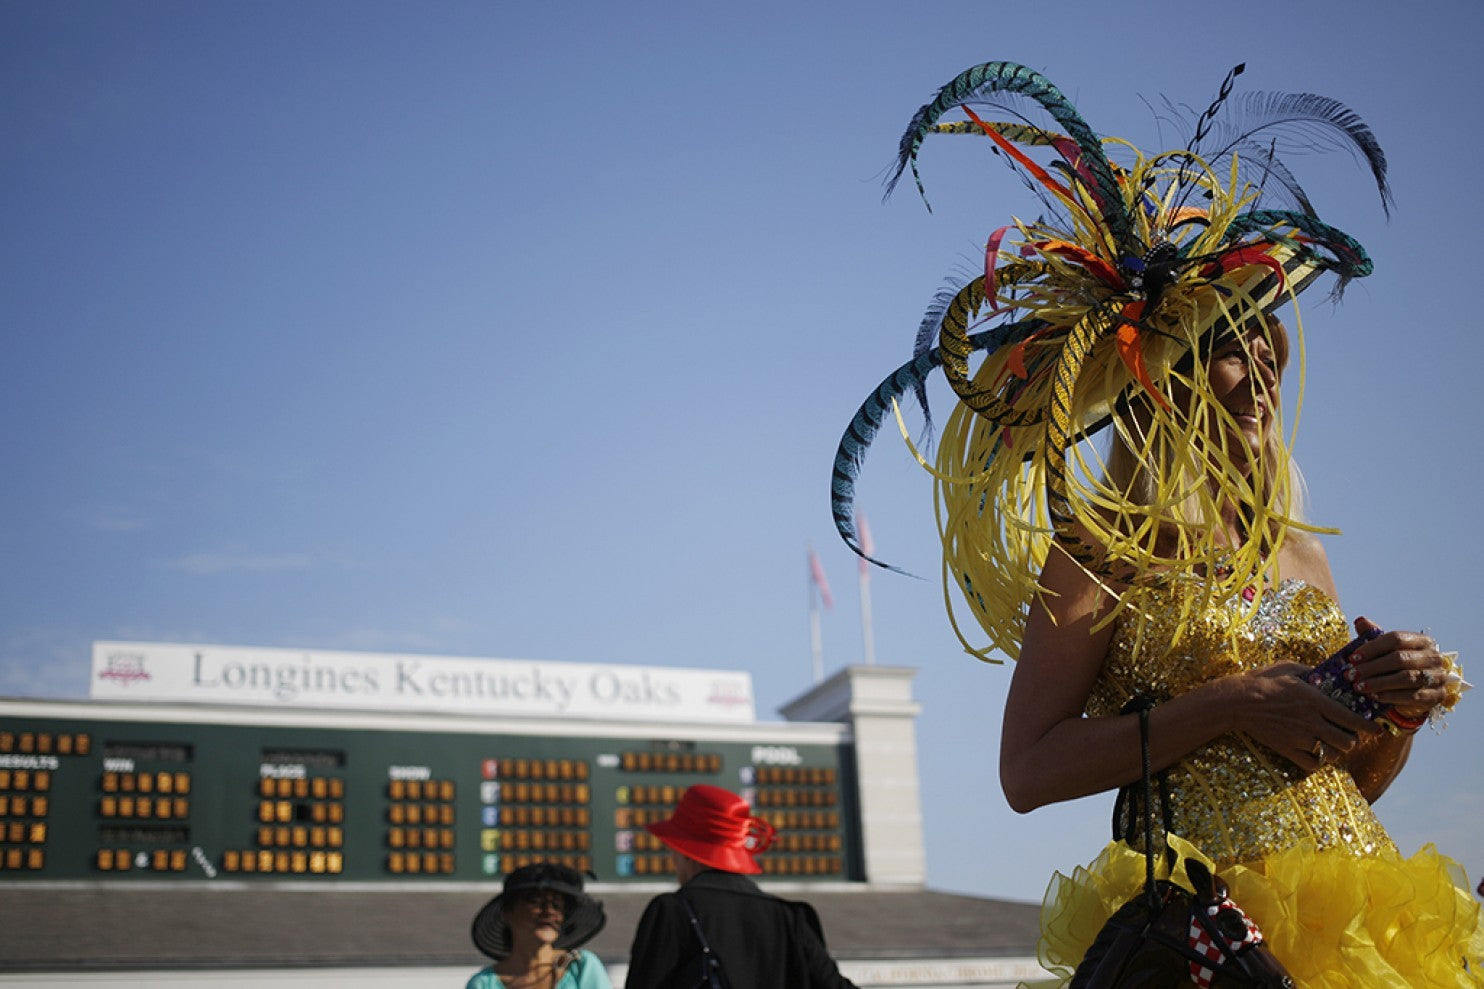 A woman in yellow wears an elaborate feathered hat for the Kentucky Derby